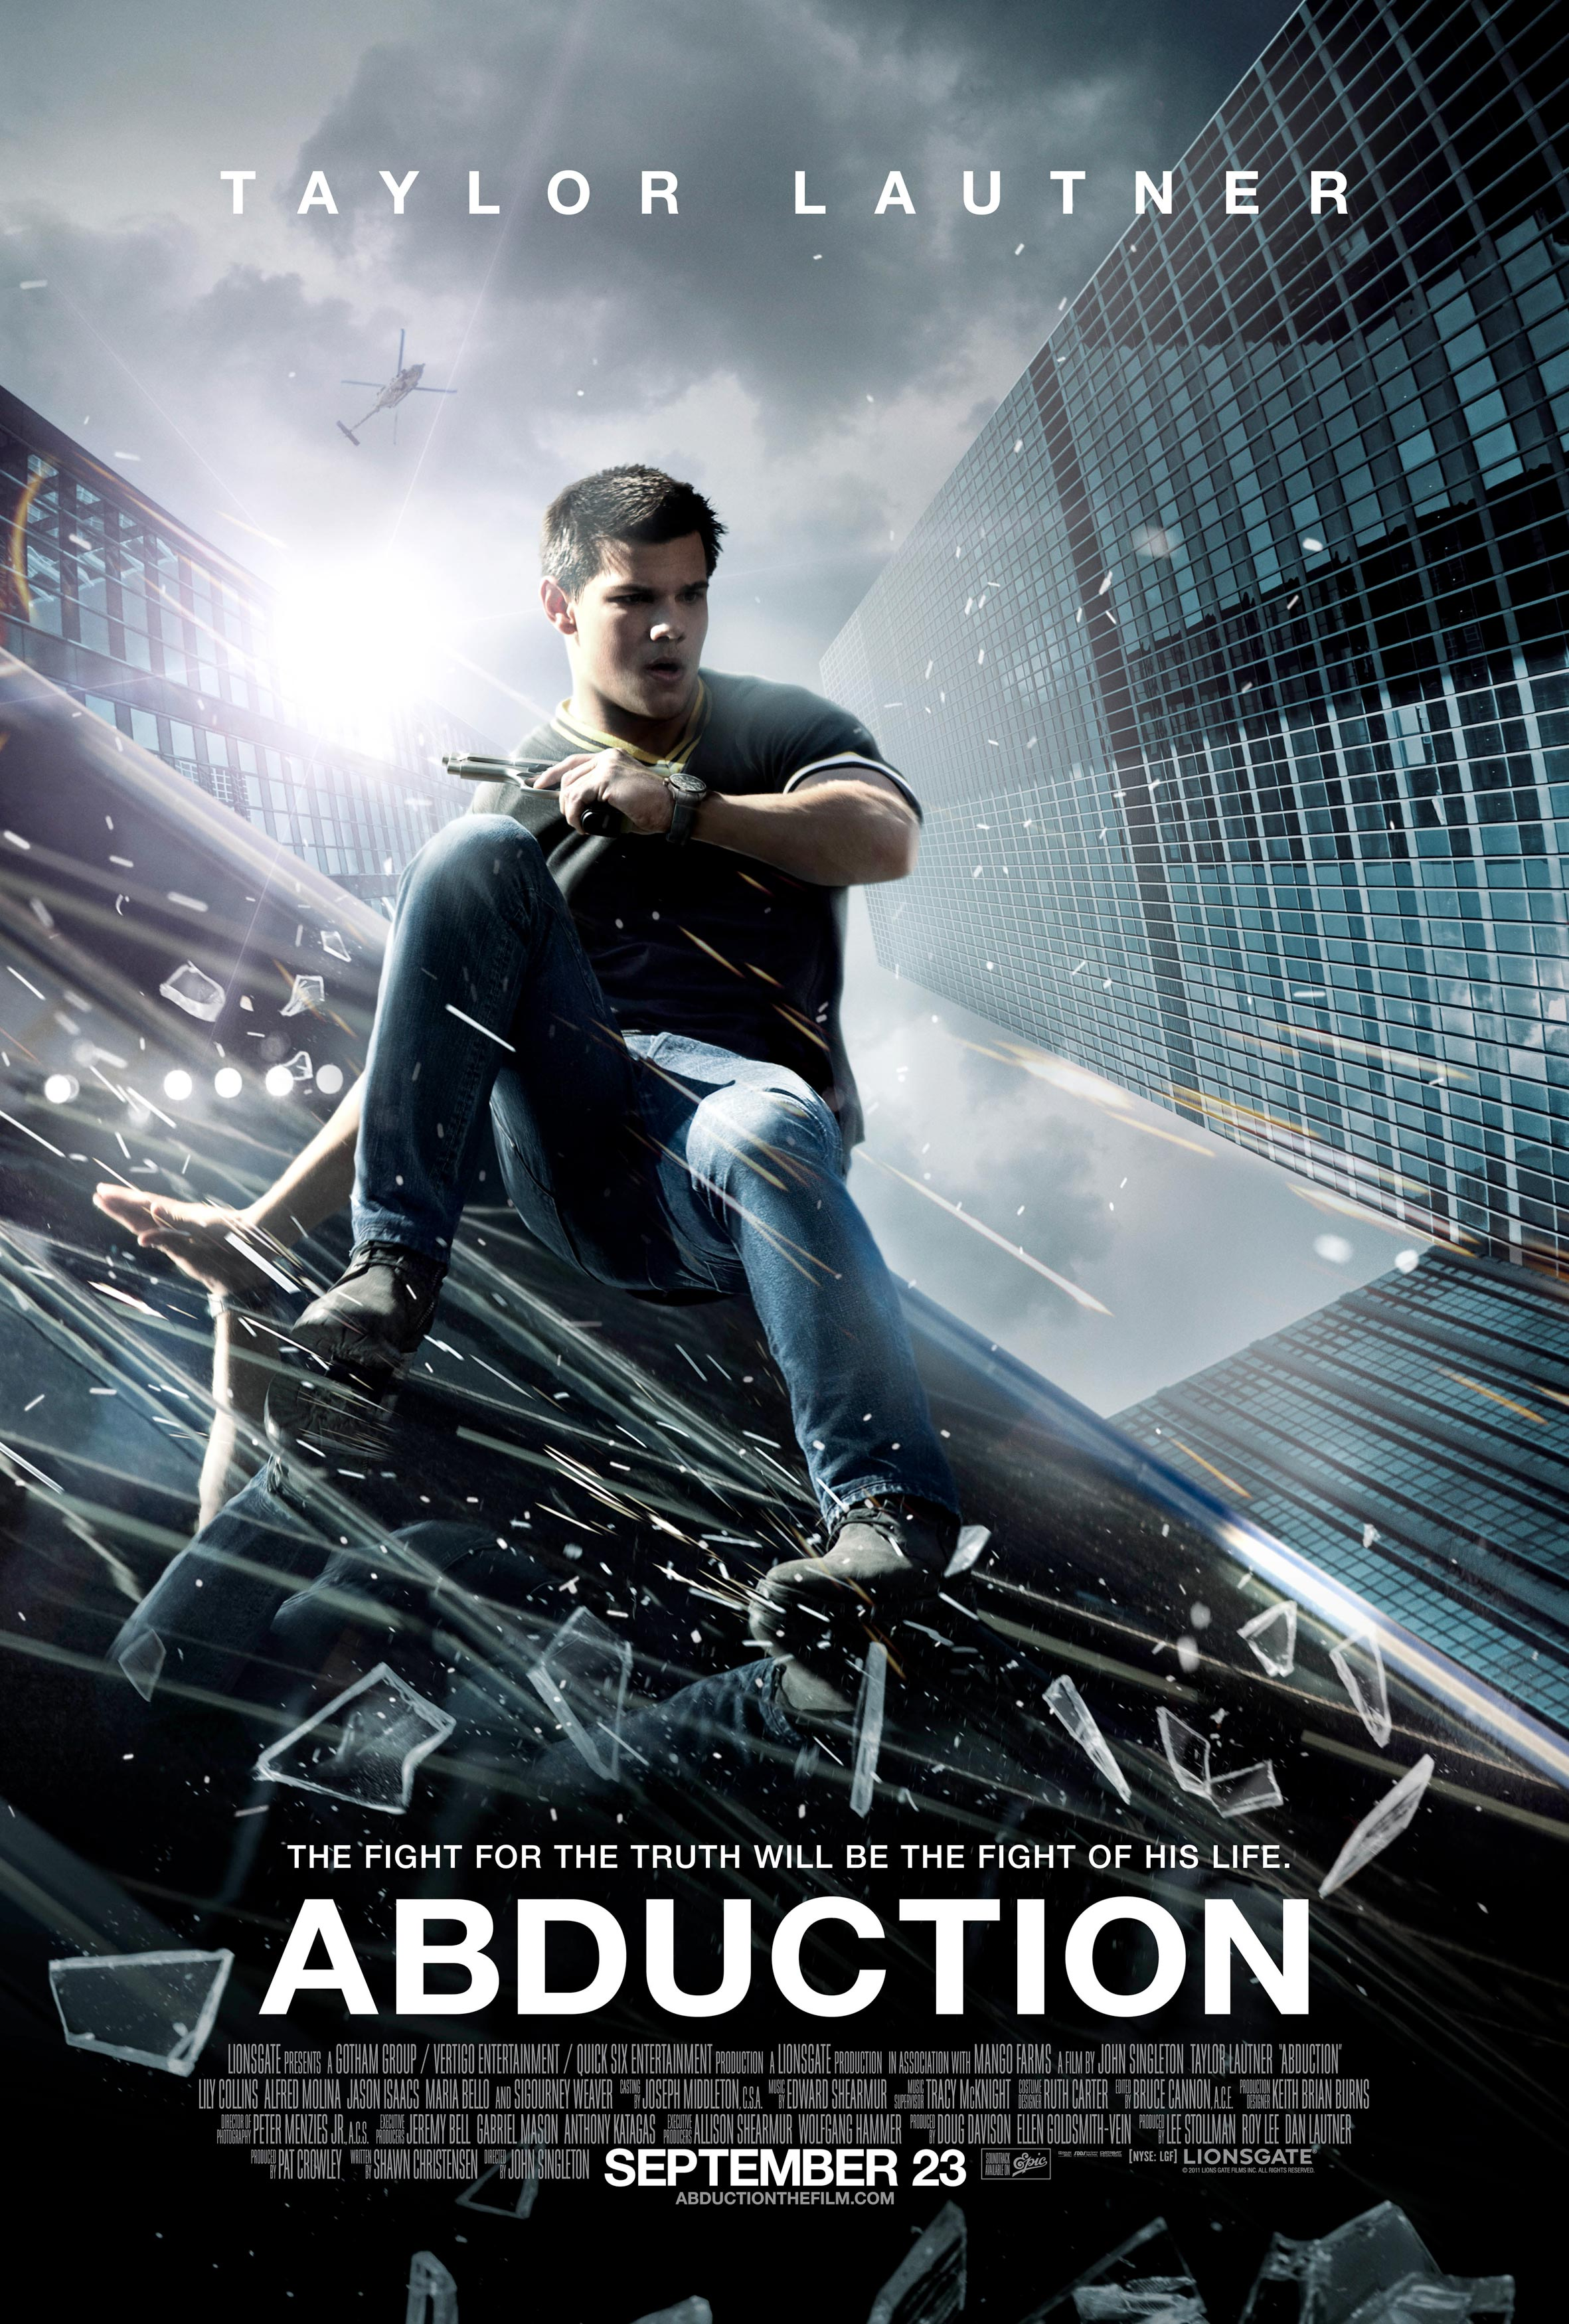 Abduction movie poster: negating Art and/or Science since ... Taylor Lautner Abduction